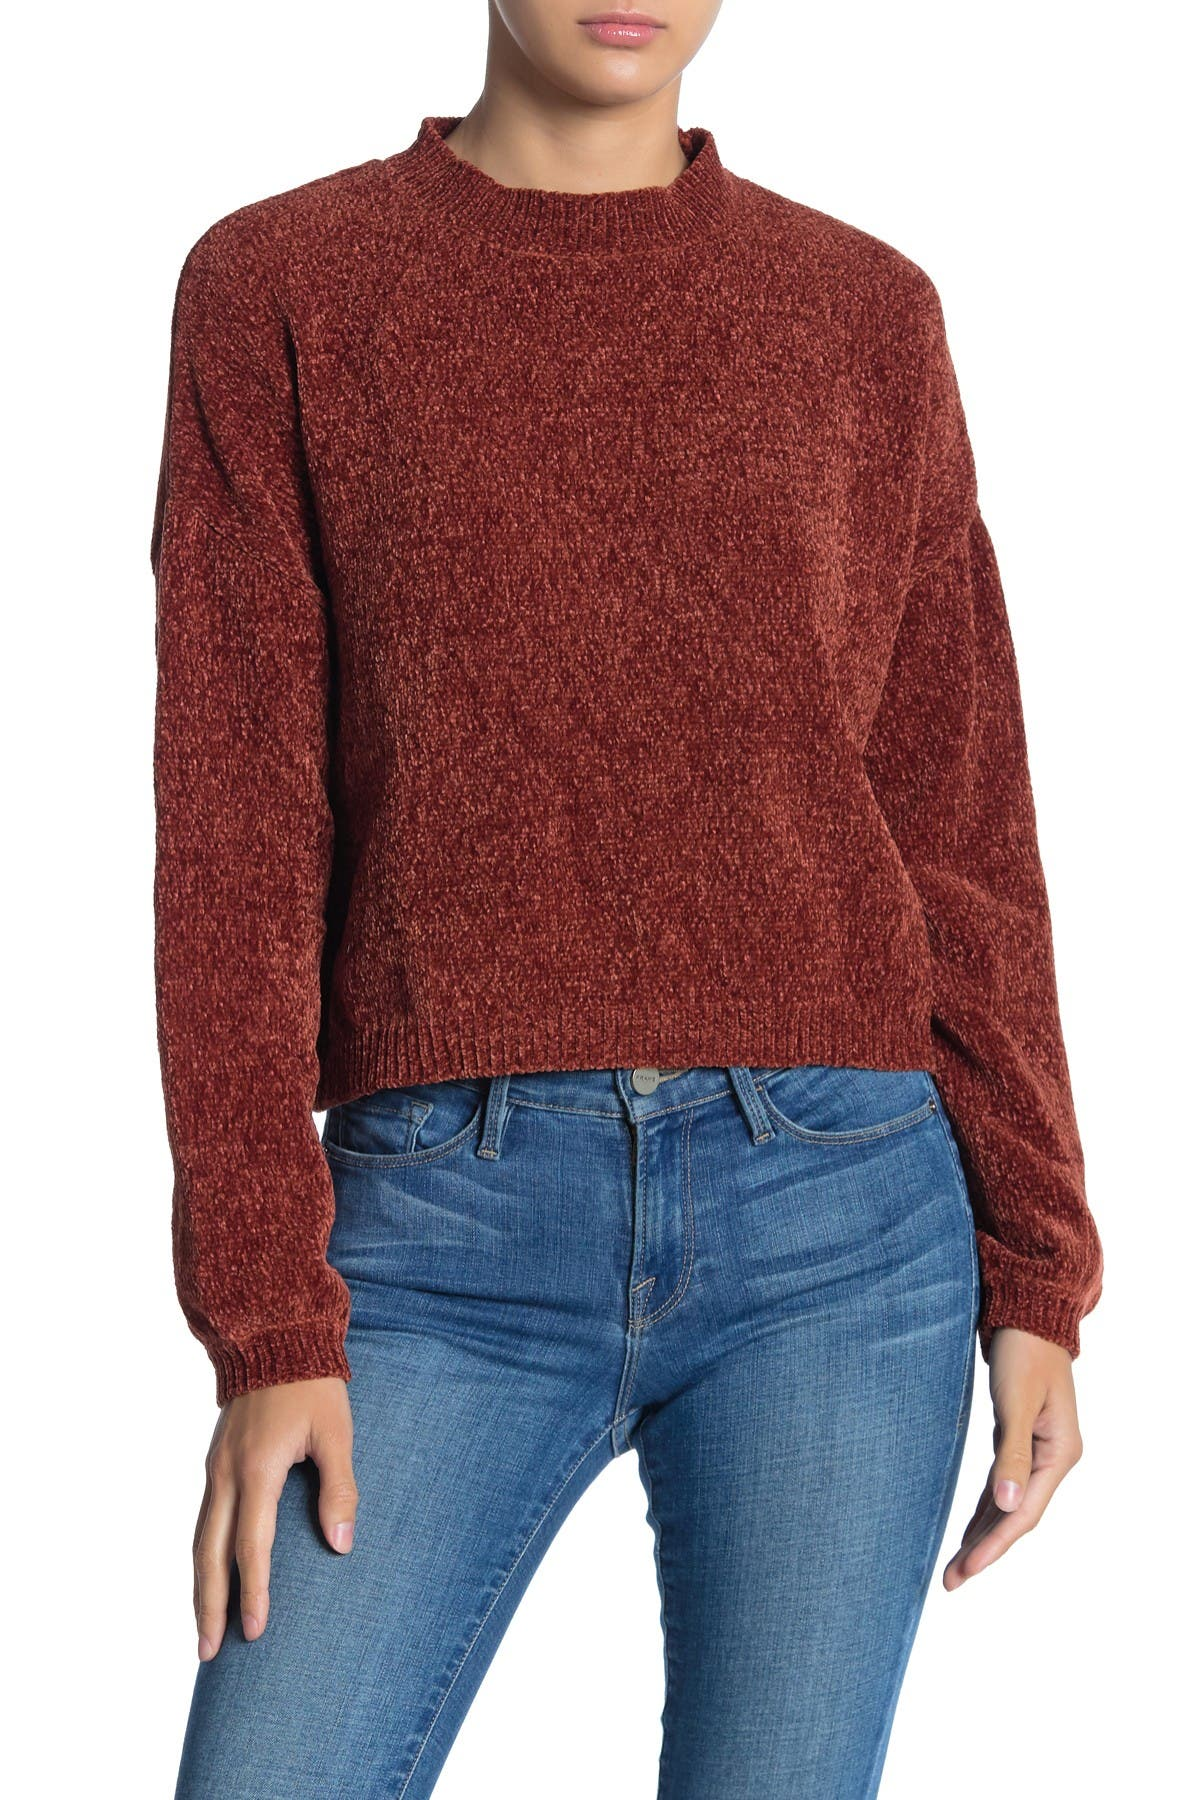 Image of Cotton Emporium Chenille Knit Cropped Sweater